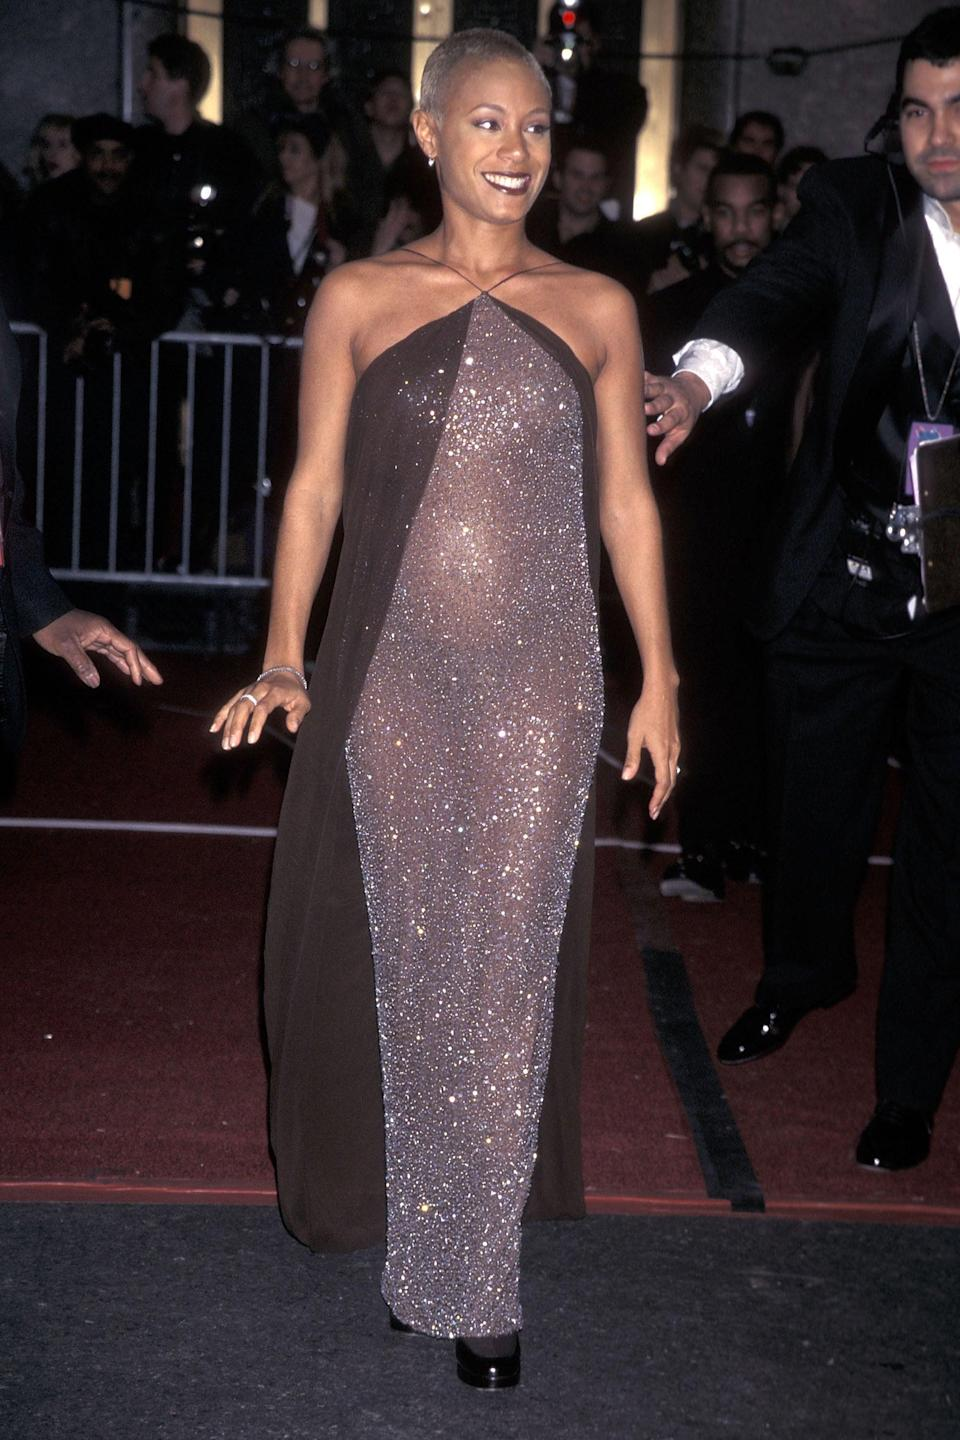 """<h2>Jada Pinkett Smith, 1998</h2><br>It's no wonder Jaden Smith is such a style star today. Just look at this naked dress his mom wore to the Grammys while she was pregnant with him. <span class=""""copyright"""">Photo: Ron Galella, Ltd./Ron Galella Collection/Getty Images.</span>"""